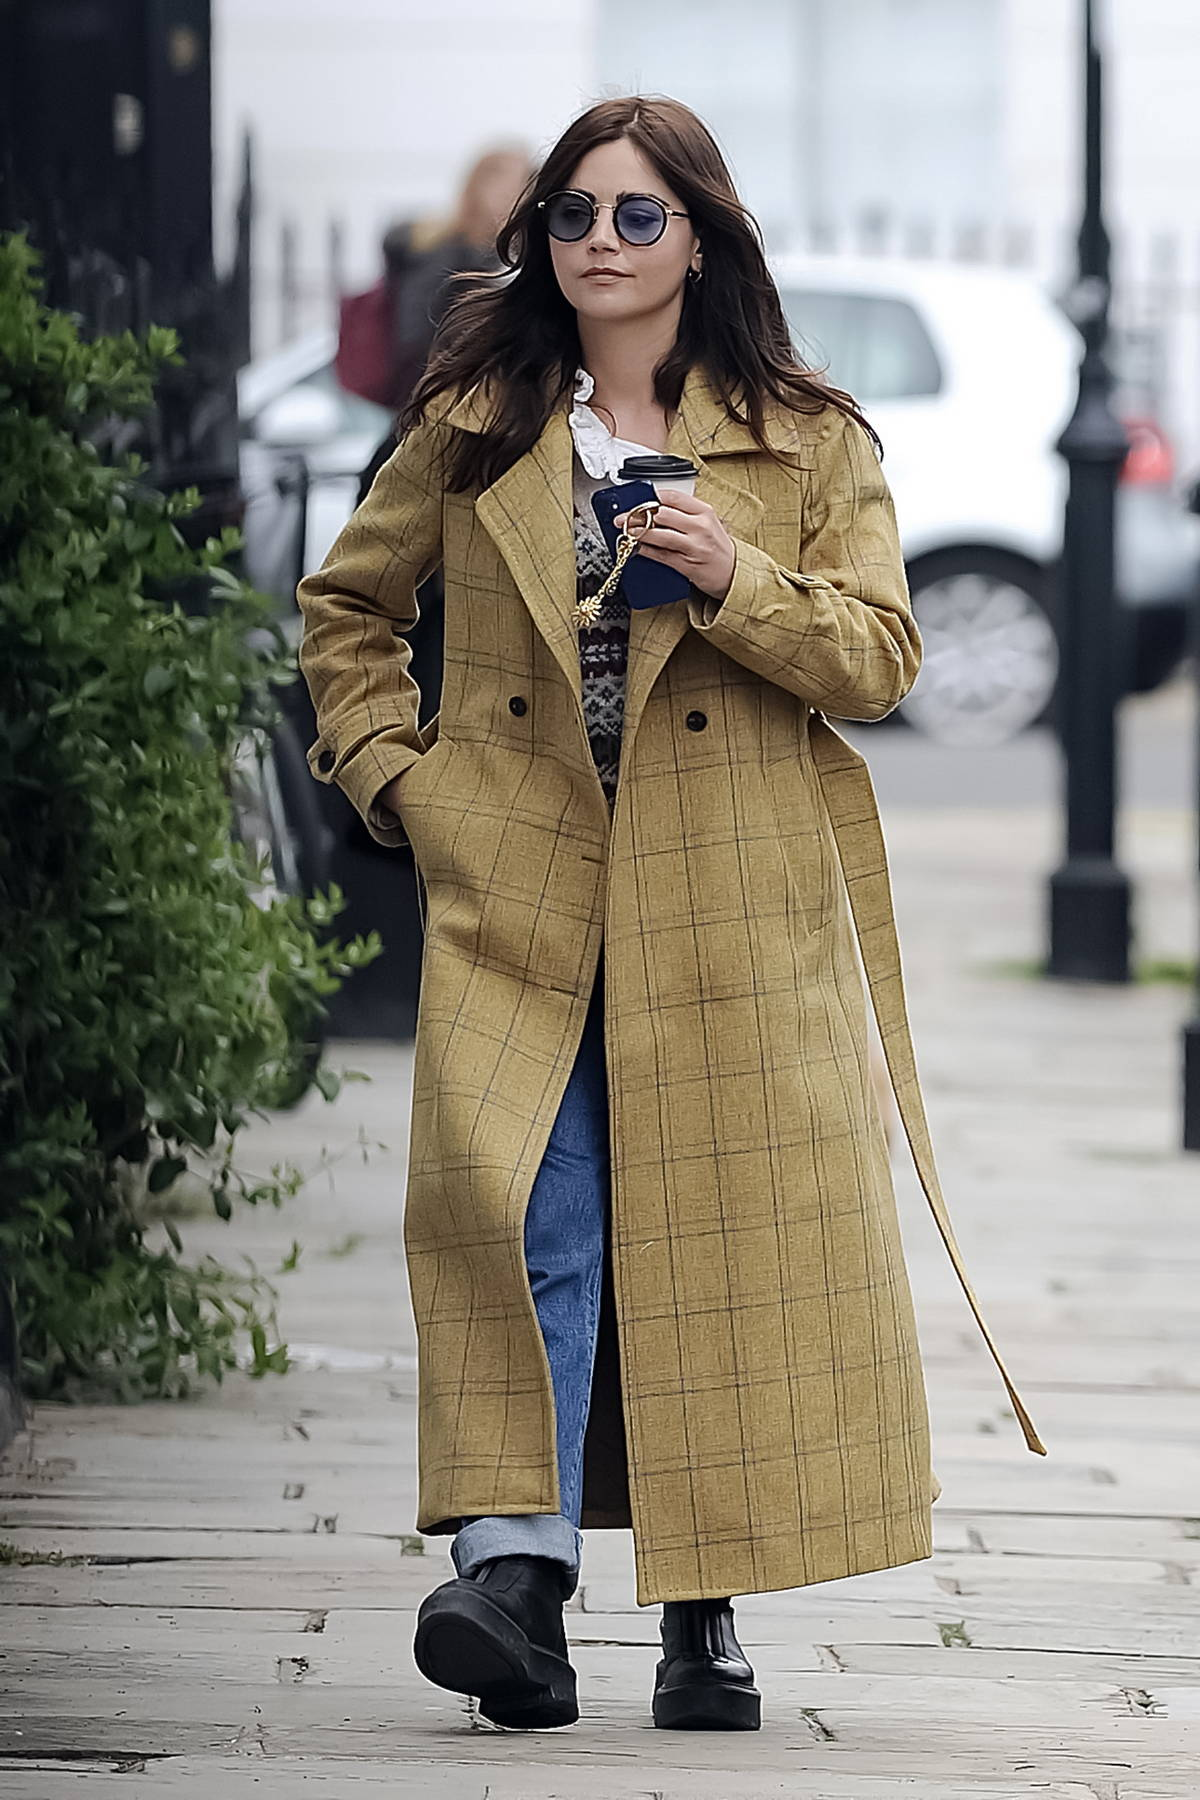 Jenna Coleman wears a checkered trench coat while stepping out for coffee in London, UK